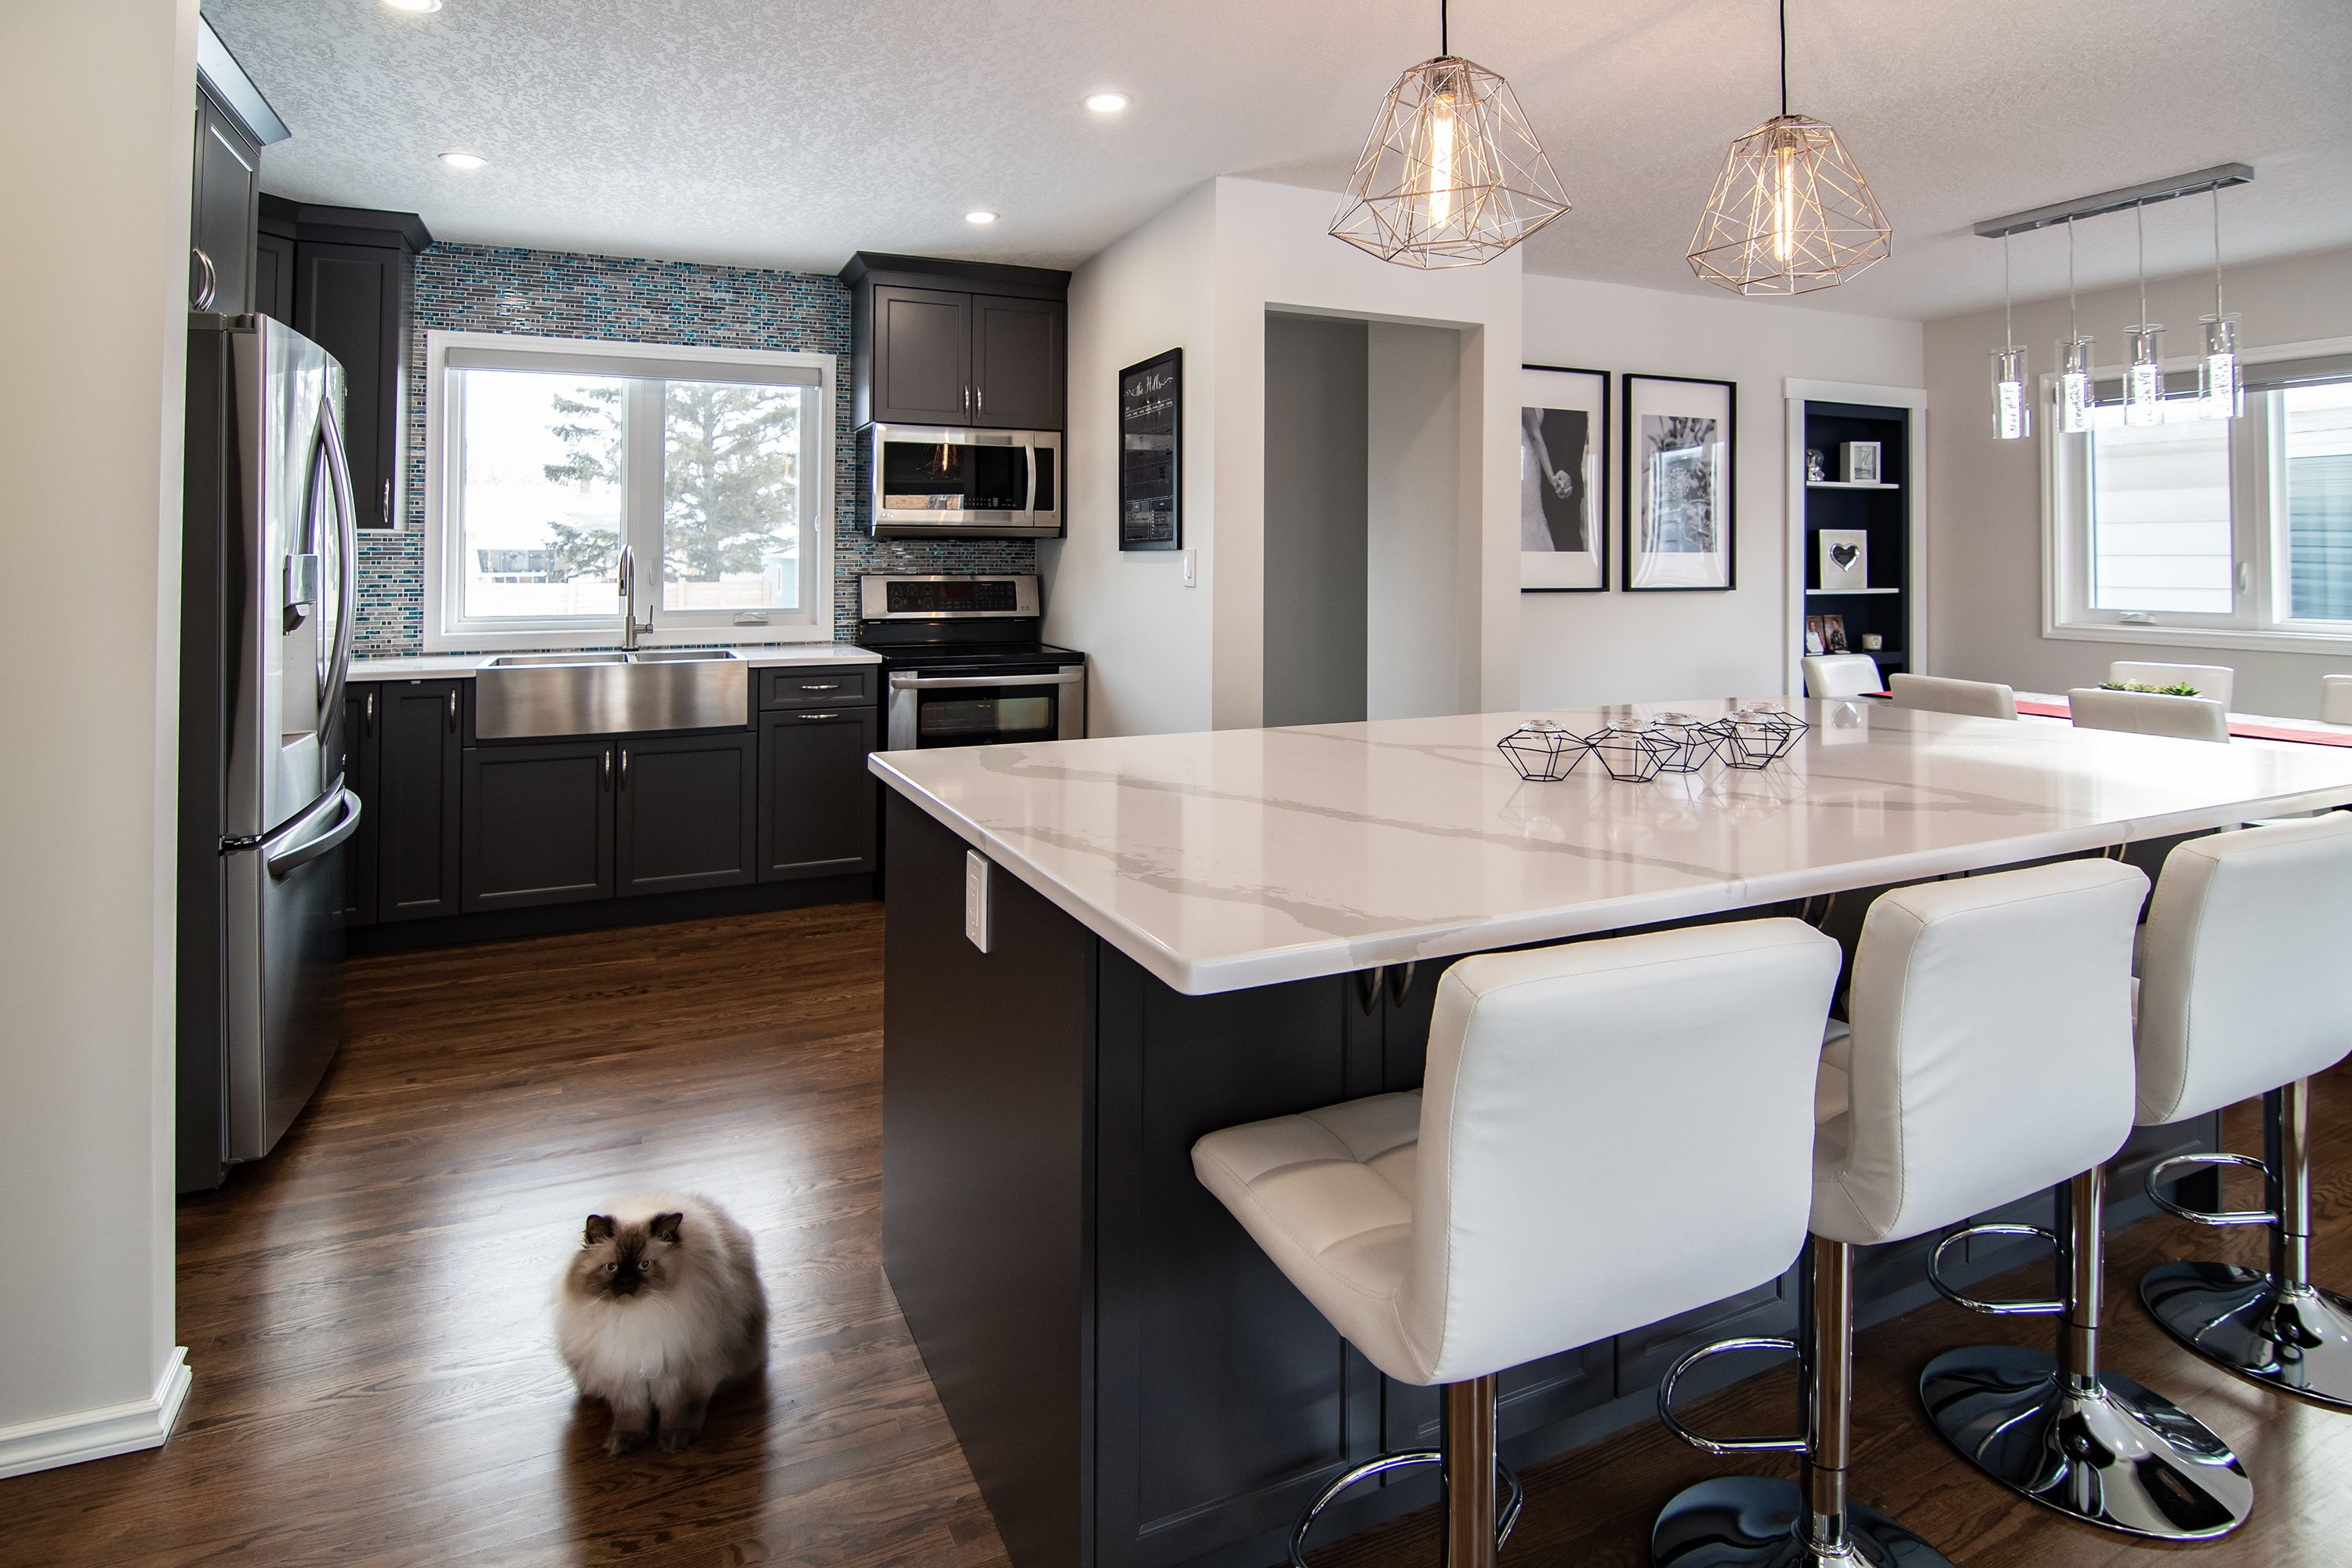 The Ombra Kitchen Project Superior Cabinets Kitchen Projects Quality Kitchens